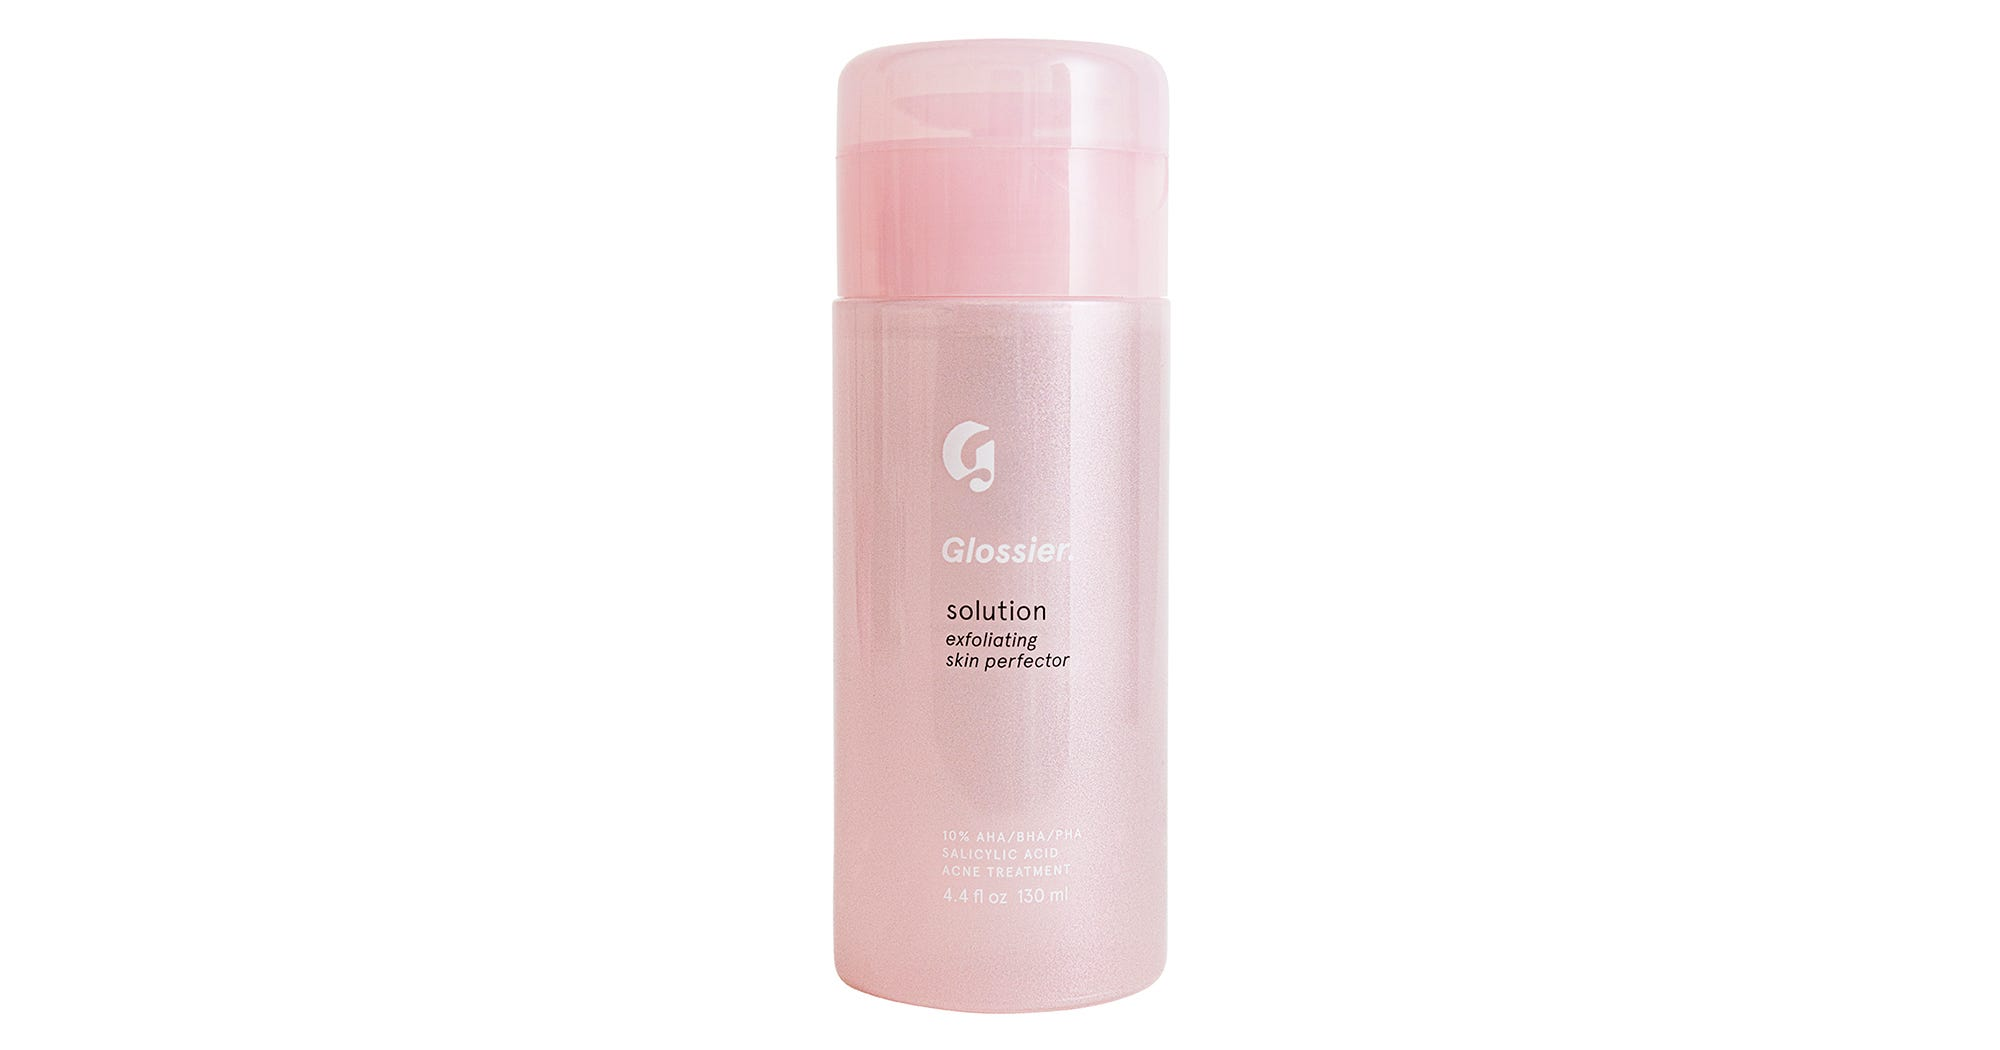 We Tried Every Product From Glossier — Here's What We Thought